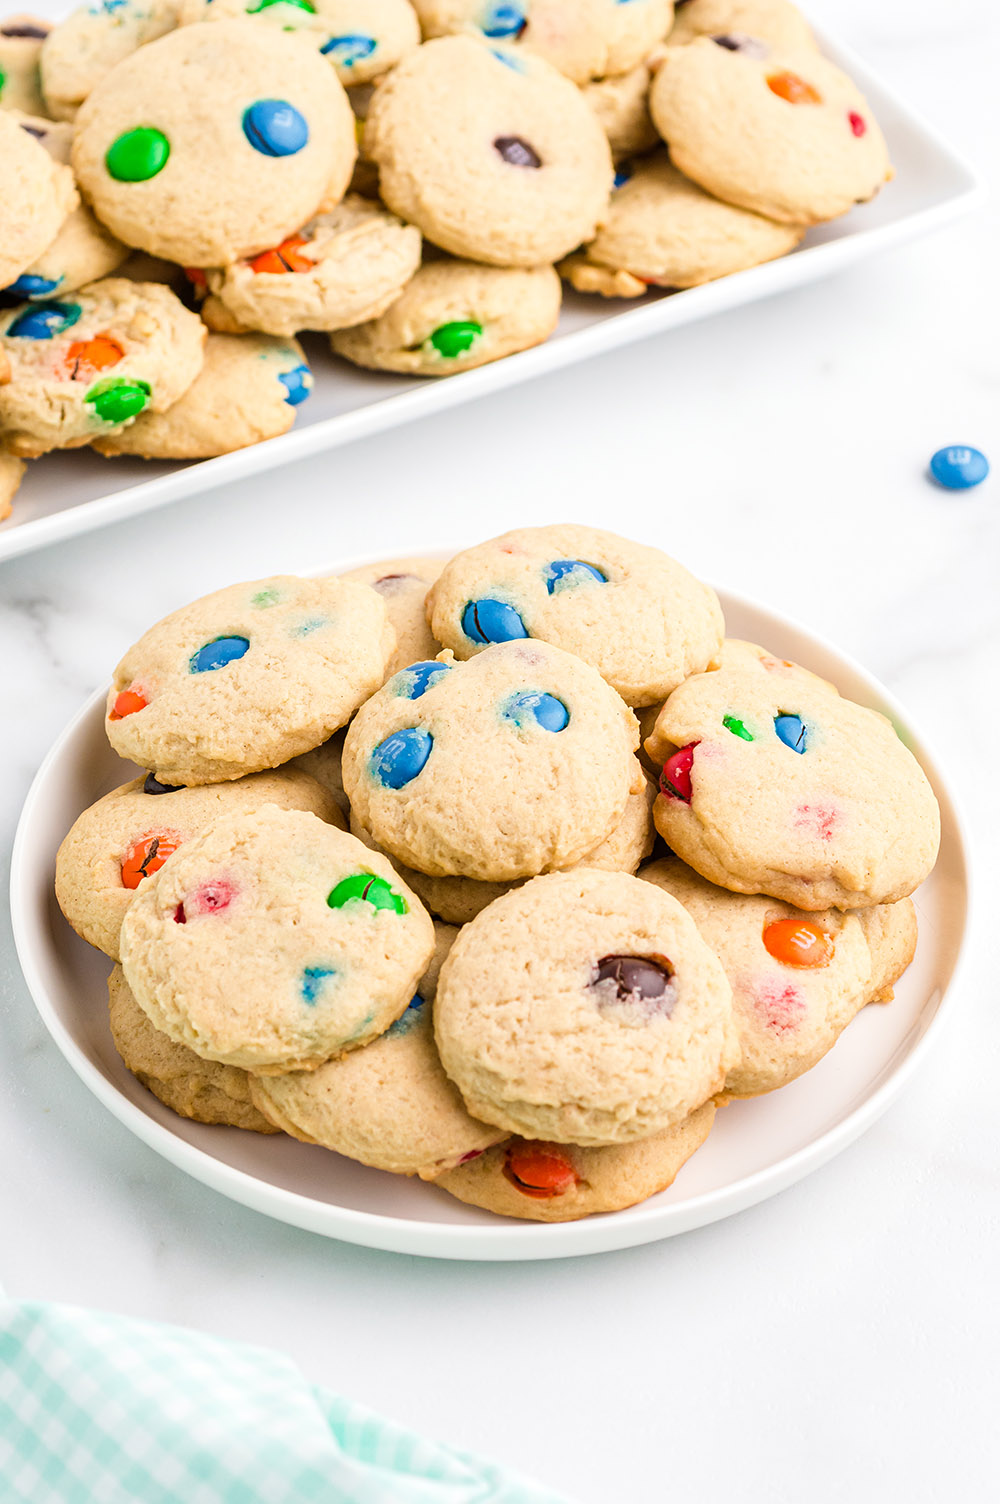 Plate of cookies with more on a tray in the background.